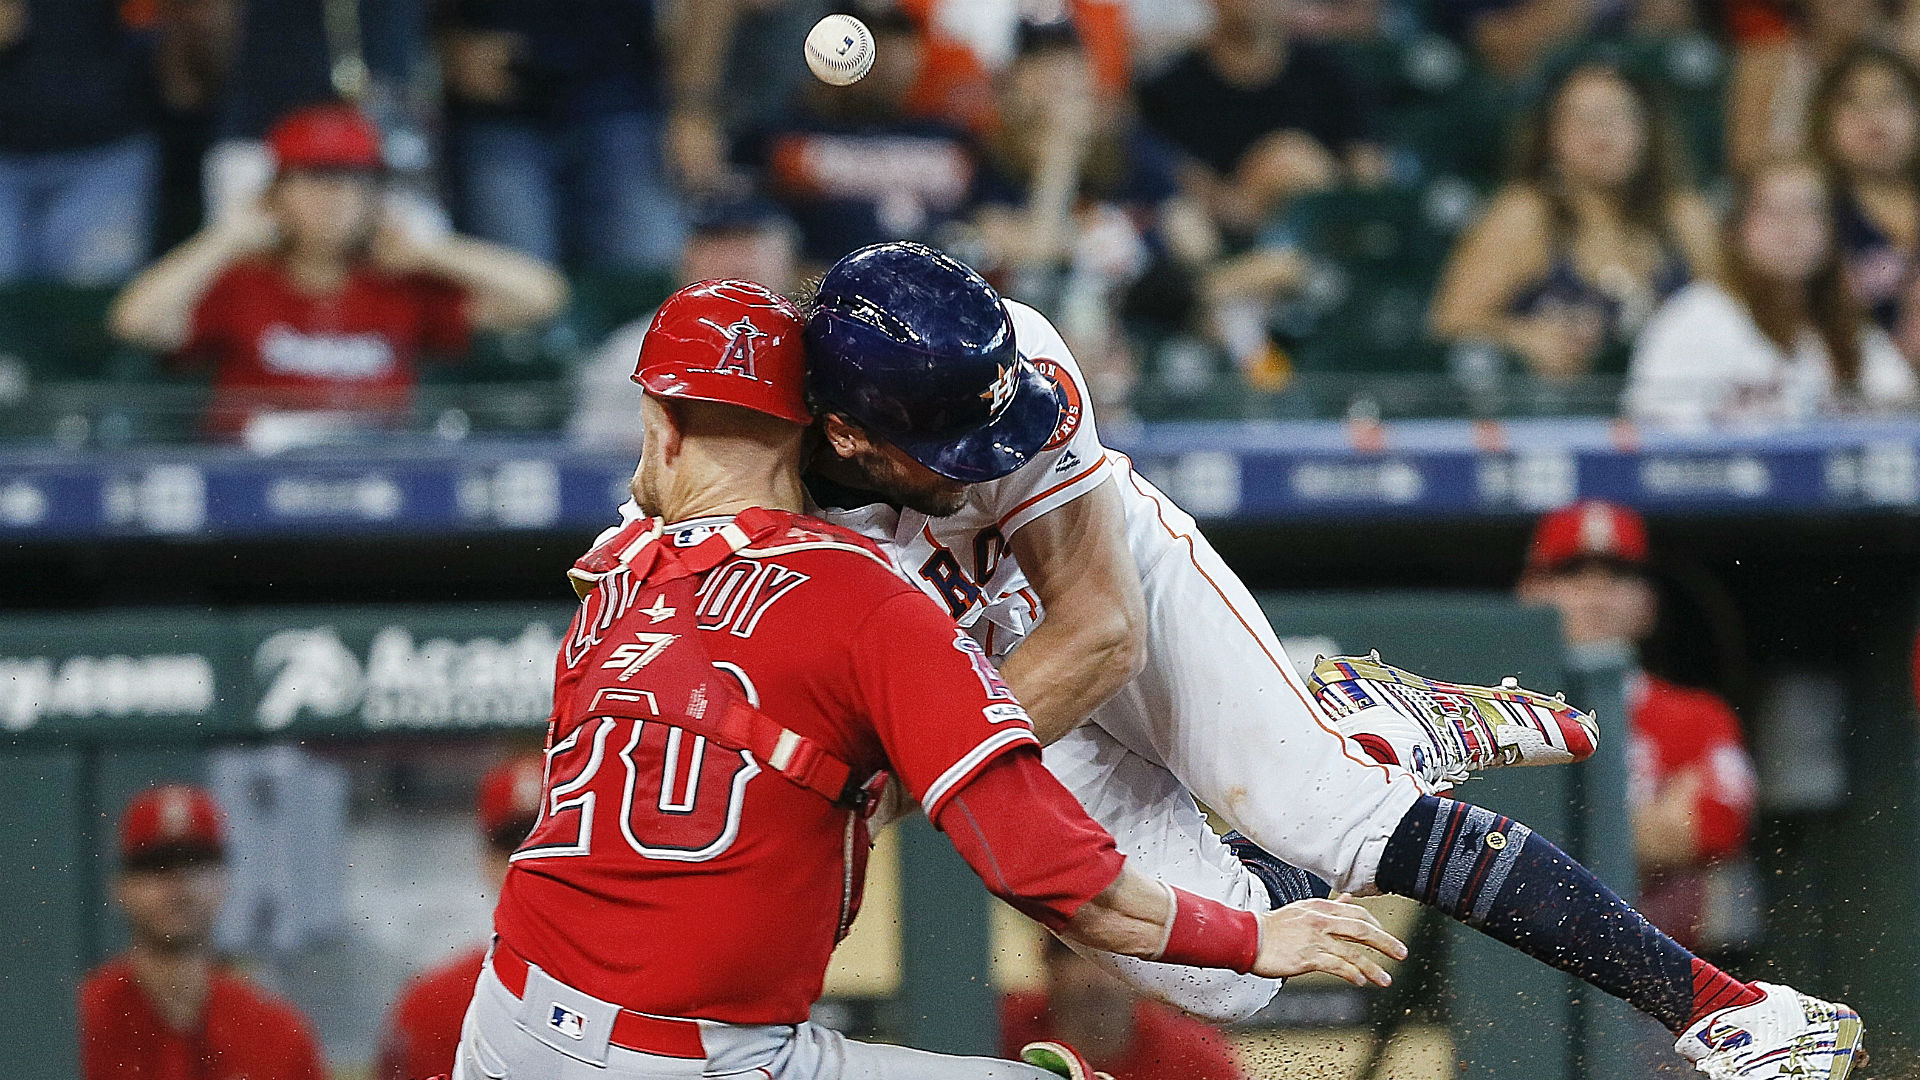 Astros' Jake Marisnick appealing 2-game suspension for scary head-on collision